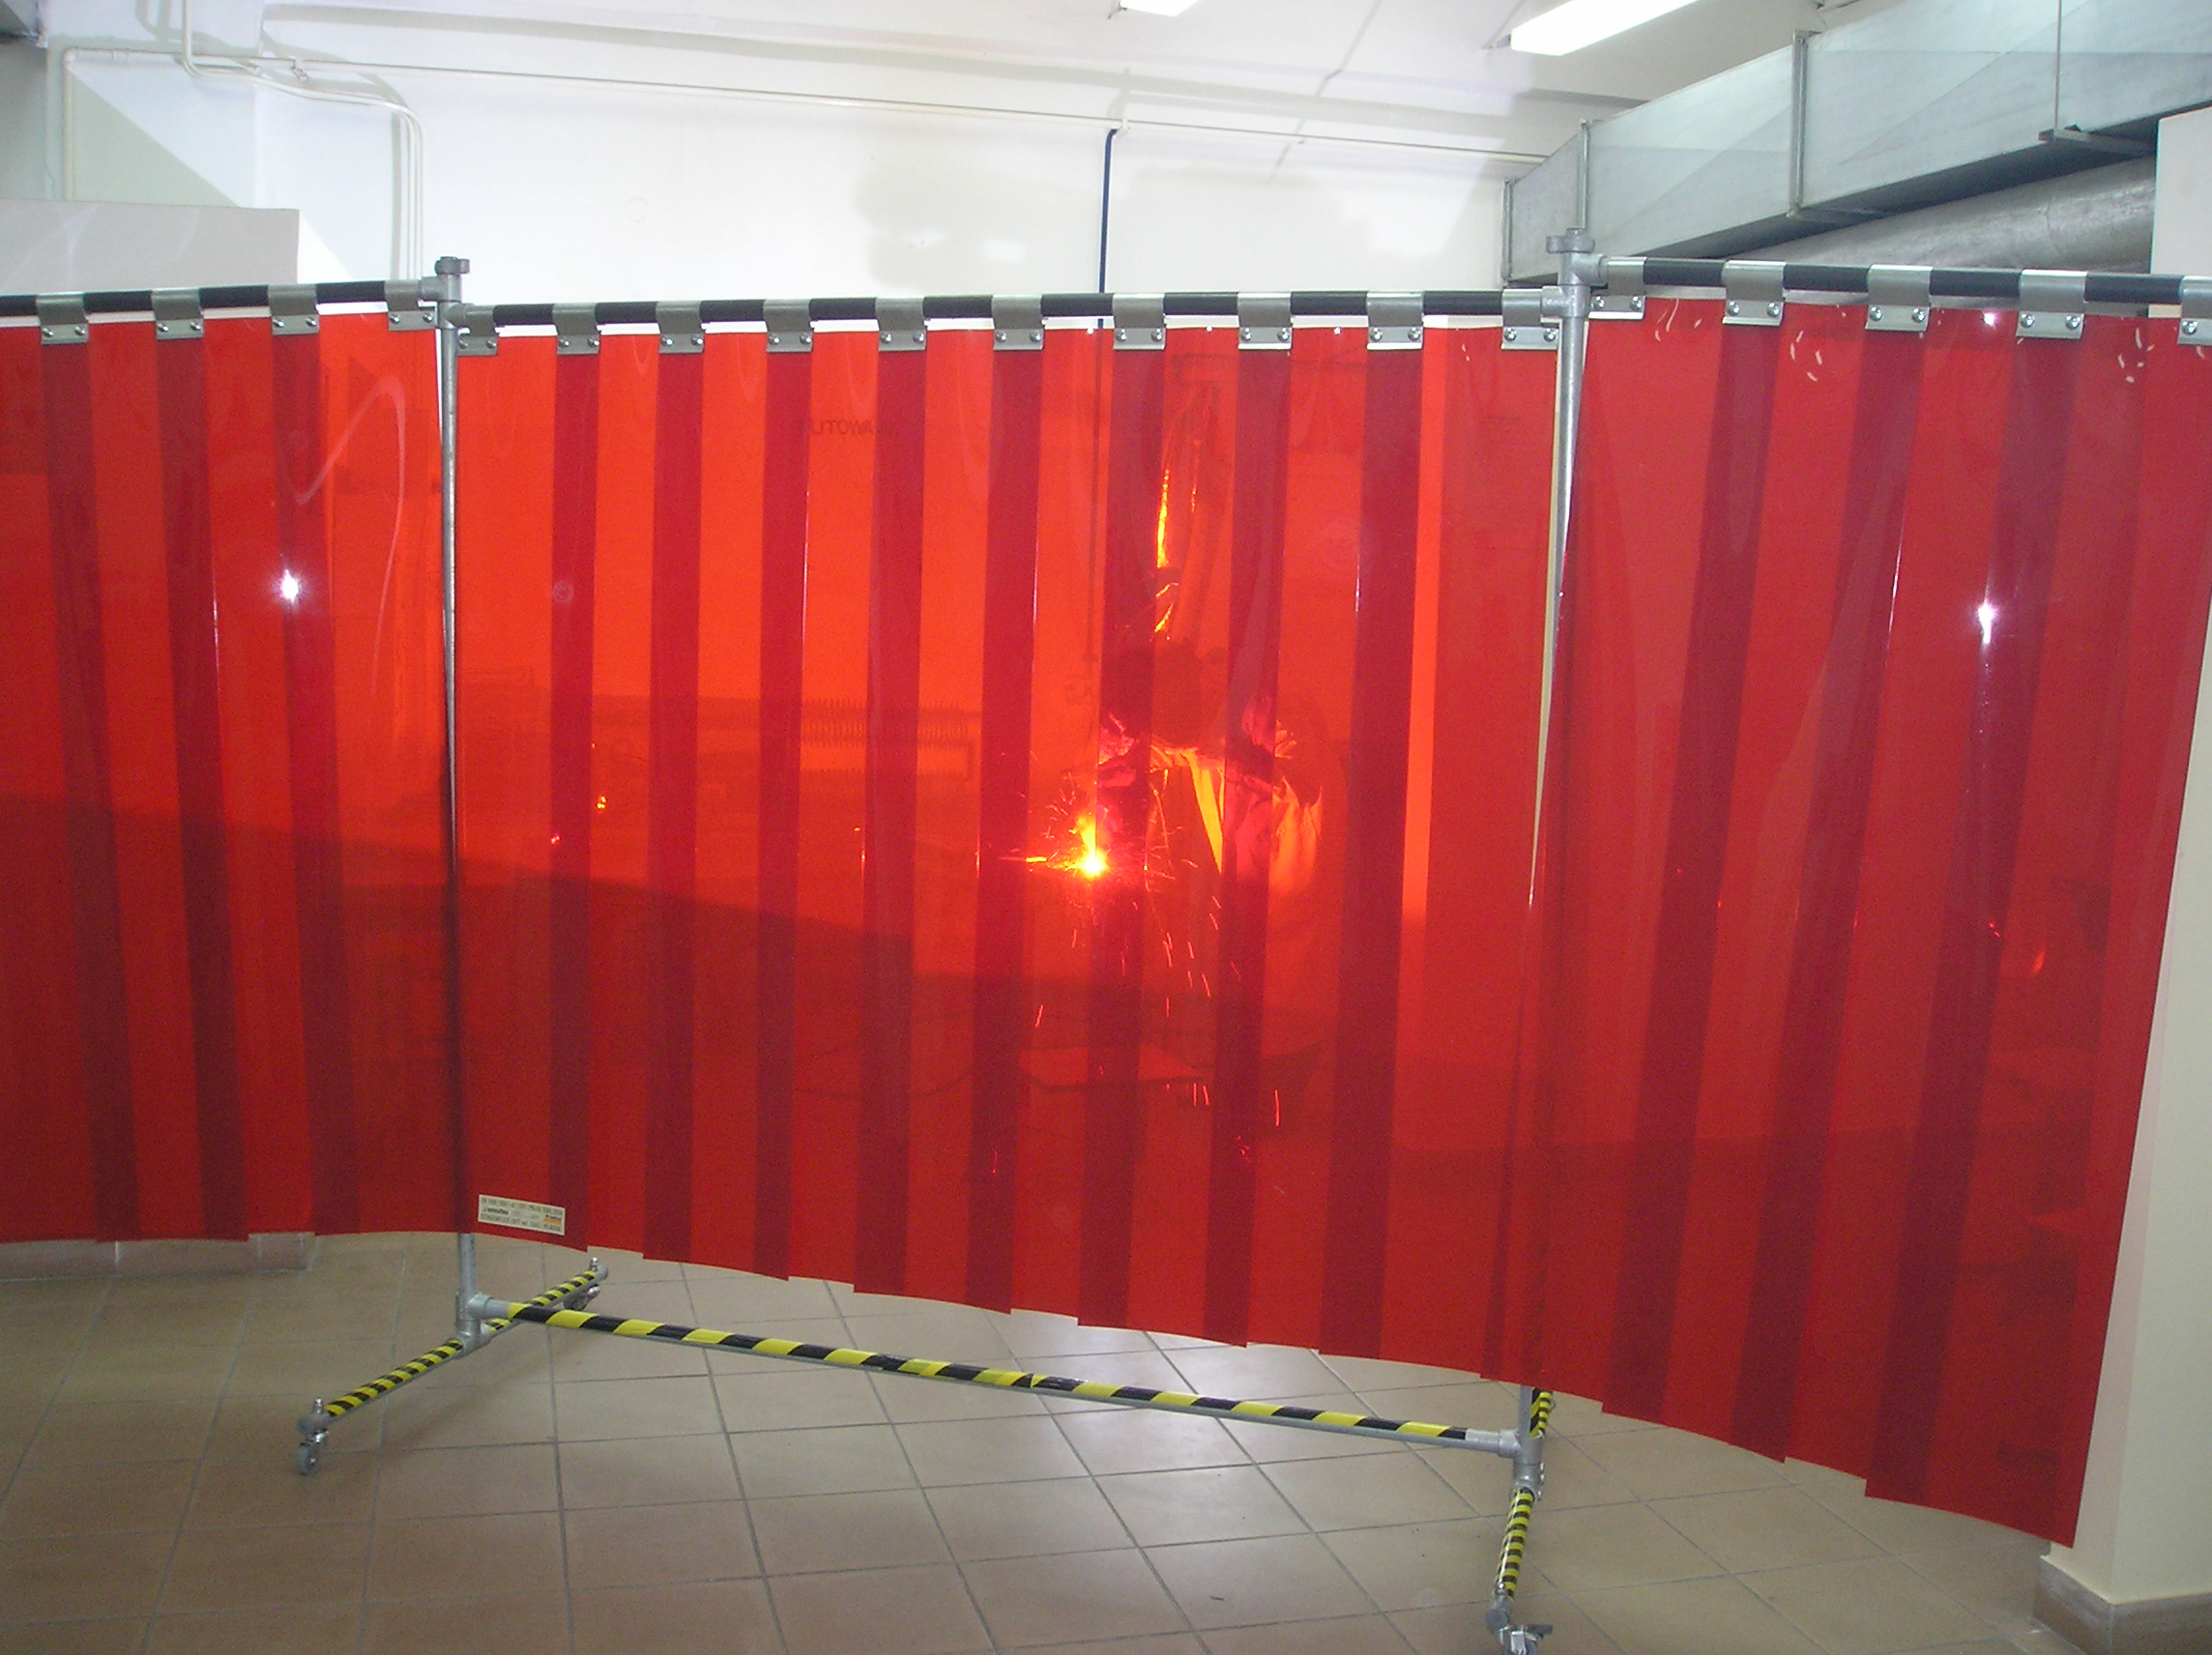 The Semi Transparent Material Can Be A Vision Panel Design Or It Can Be Made As The Entire Curtain As Shown To The Left